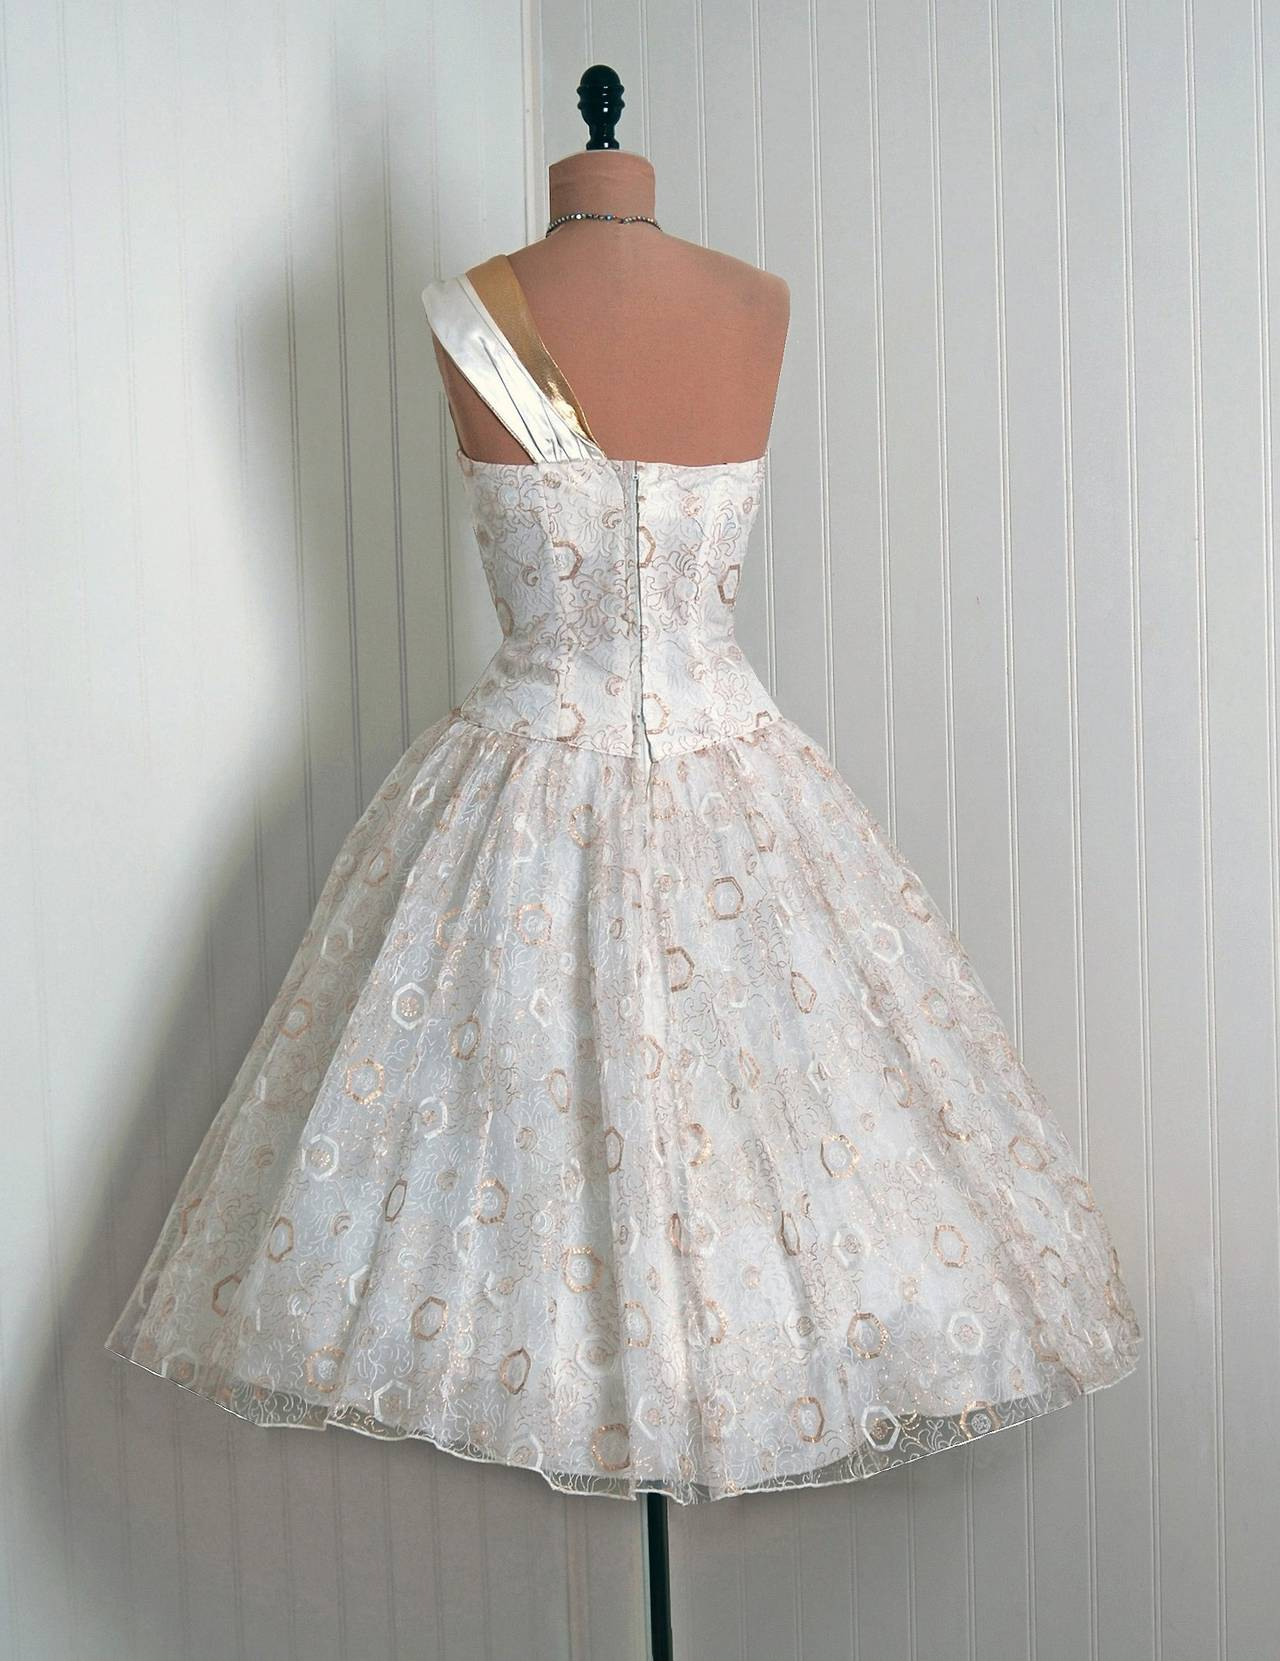 Women's 1950's Emma Domb White & Gold Embroidered Tulle One-Shoulder Party Dress For Sale